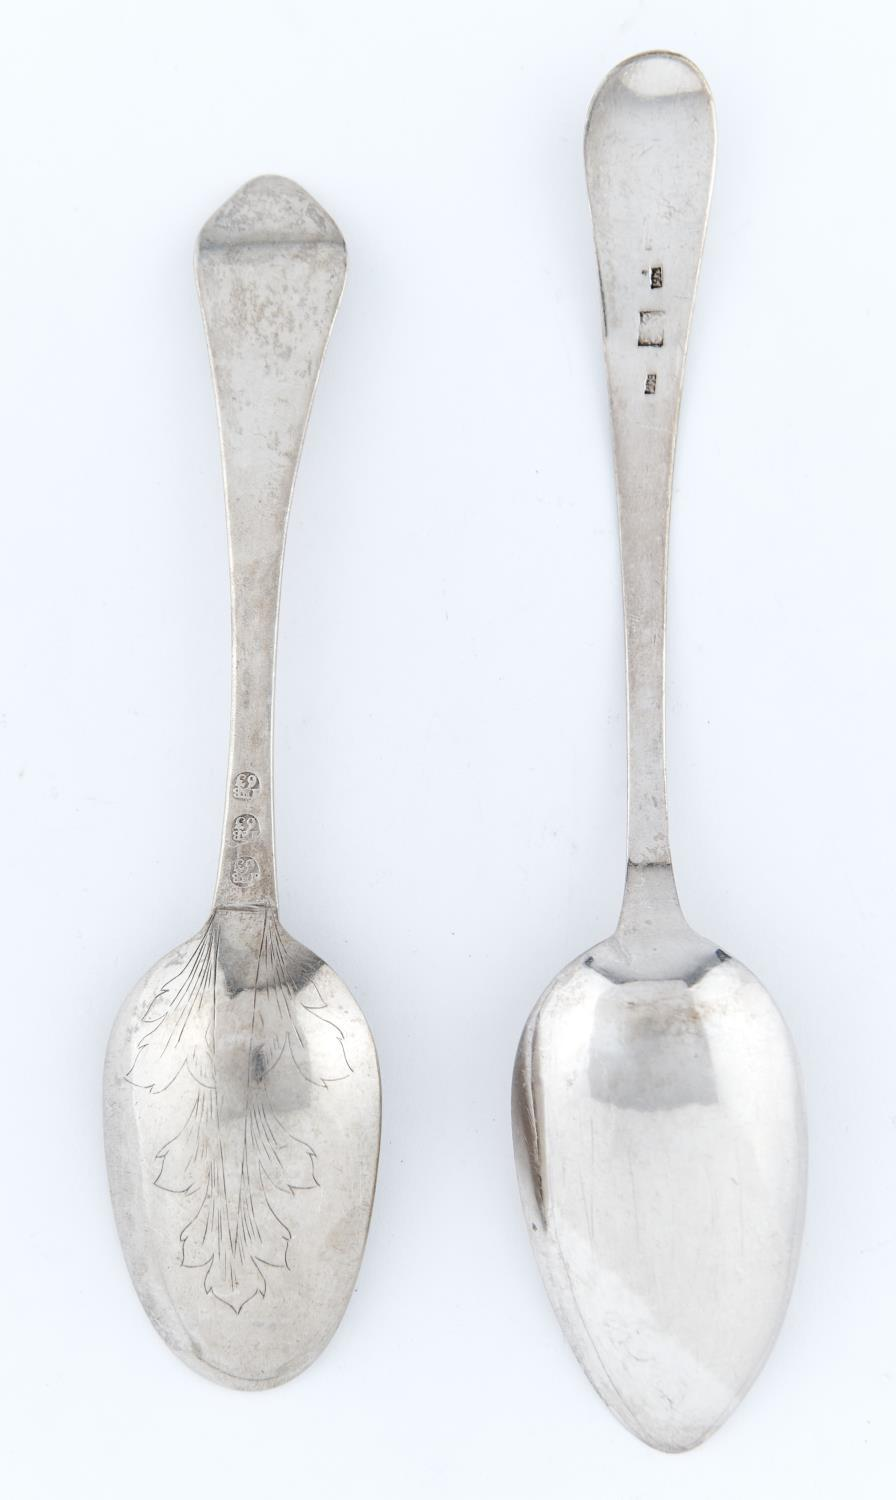 A DANISH SILVER SPOON, DOG NOSE PATTERN, THE BOWL ENGRAVED WITH A LEAF, INSCRIBED JOHAN BUSTAD, 18. - Image 2 of 2